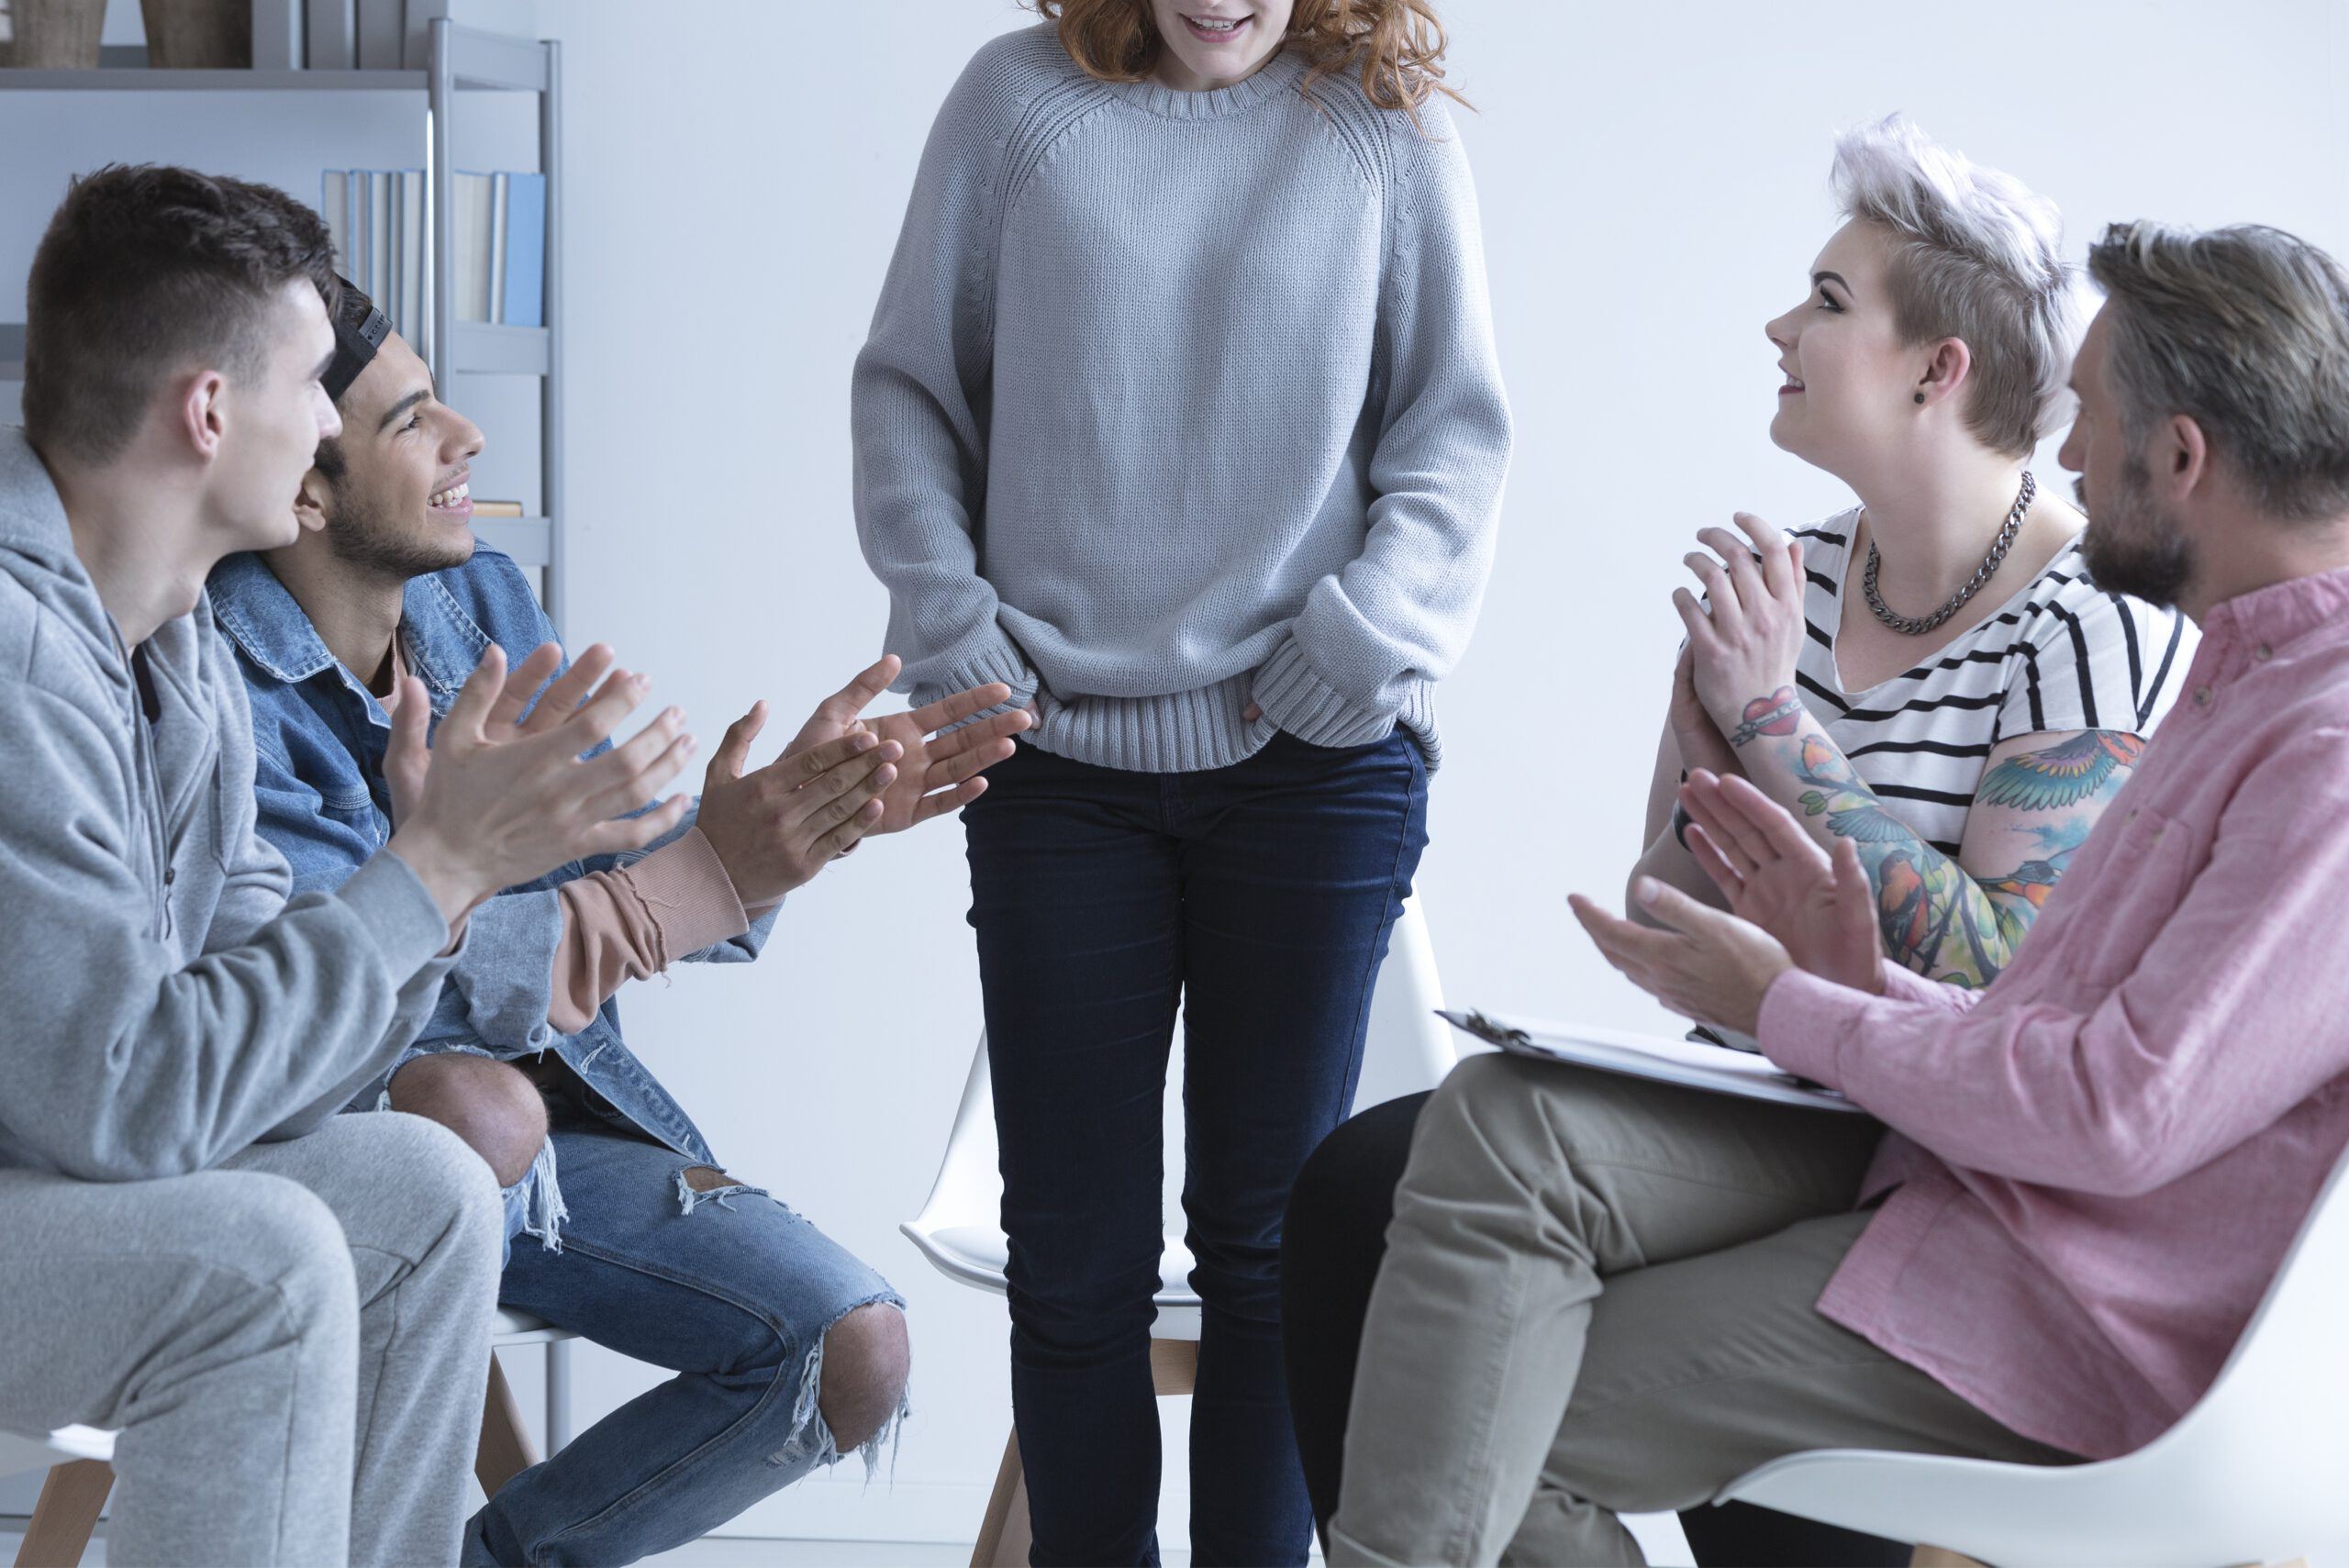 5 Tips to Start Your New Life After Recovering from Addiction